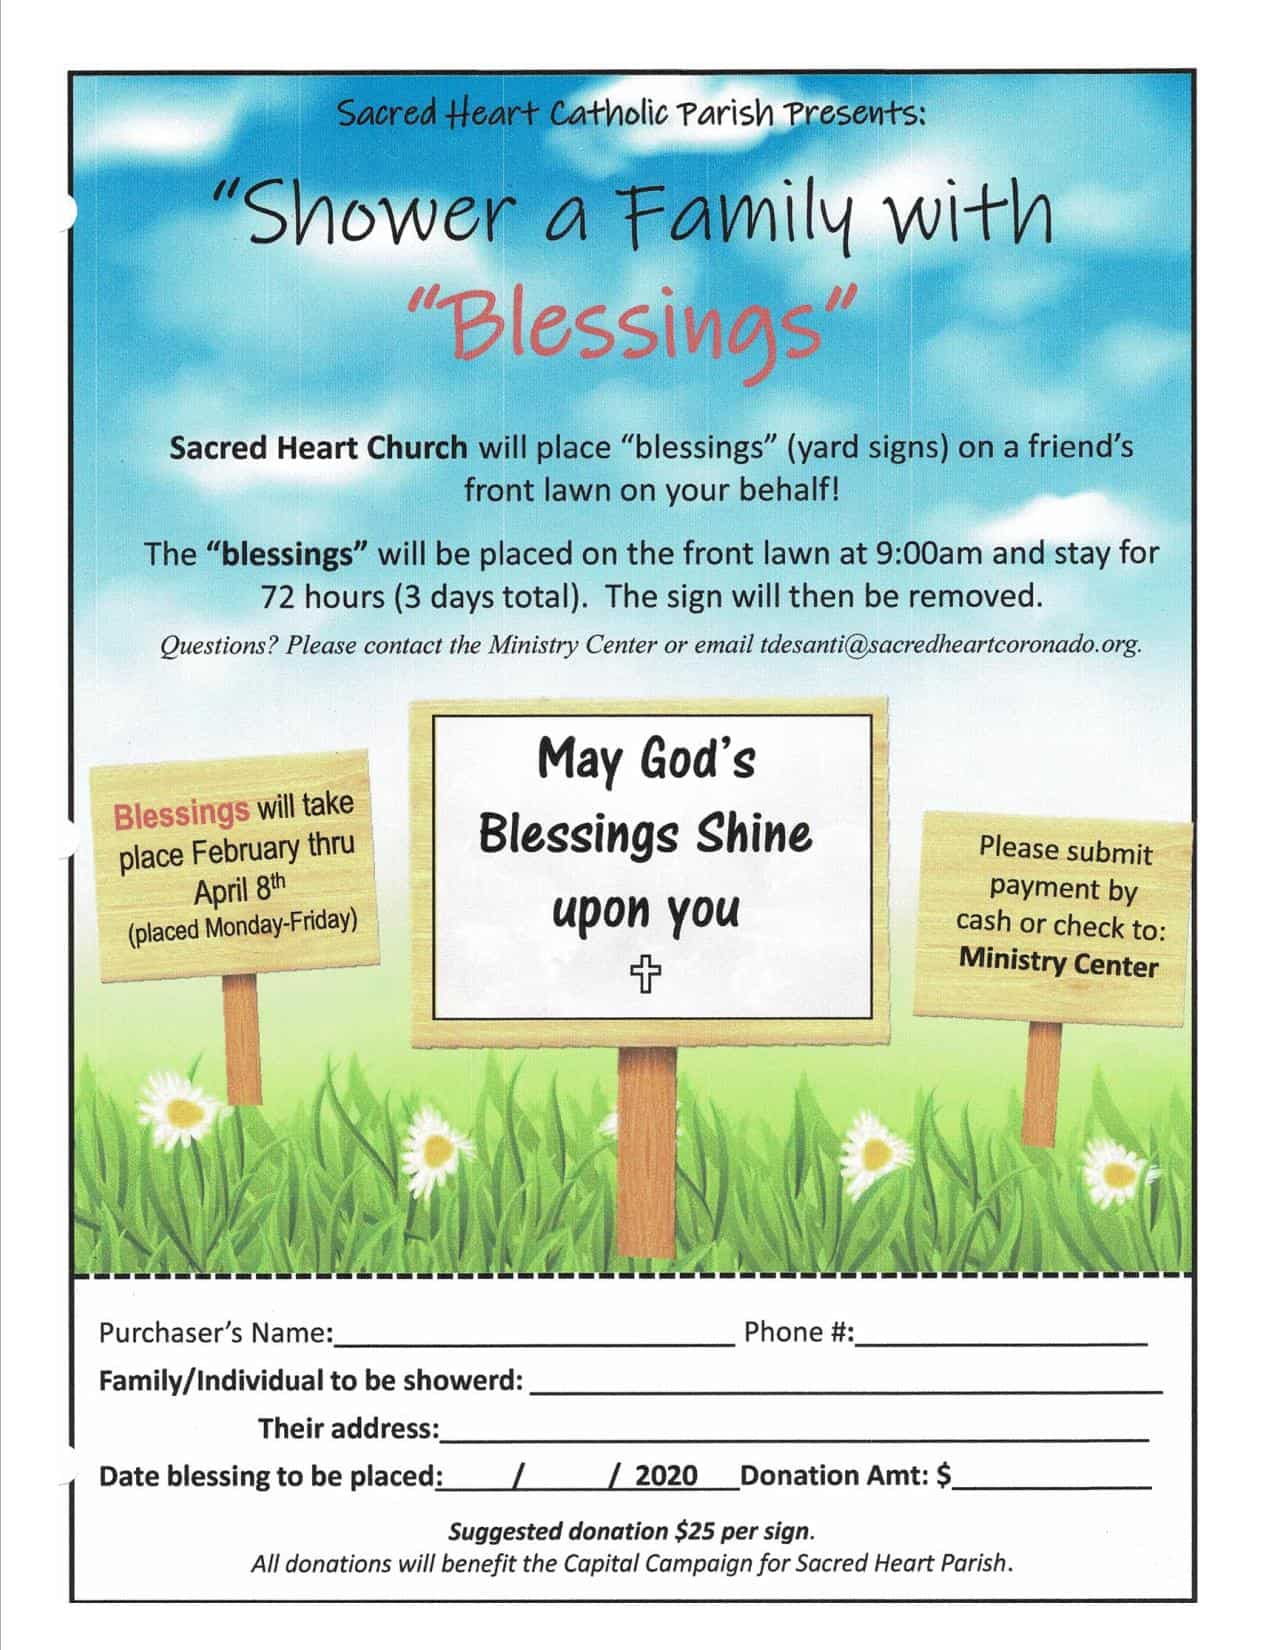 Shower a Family with Blessings